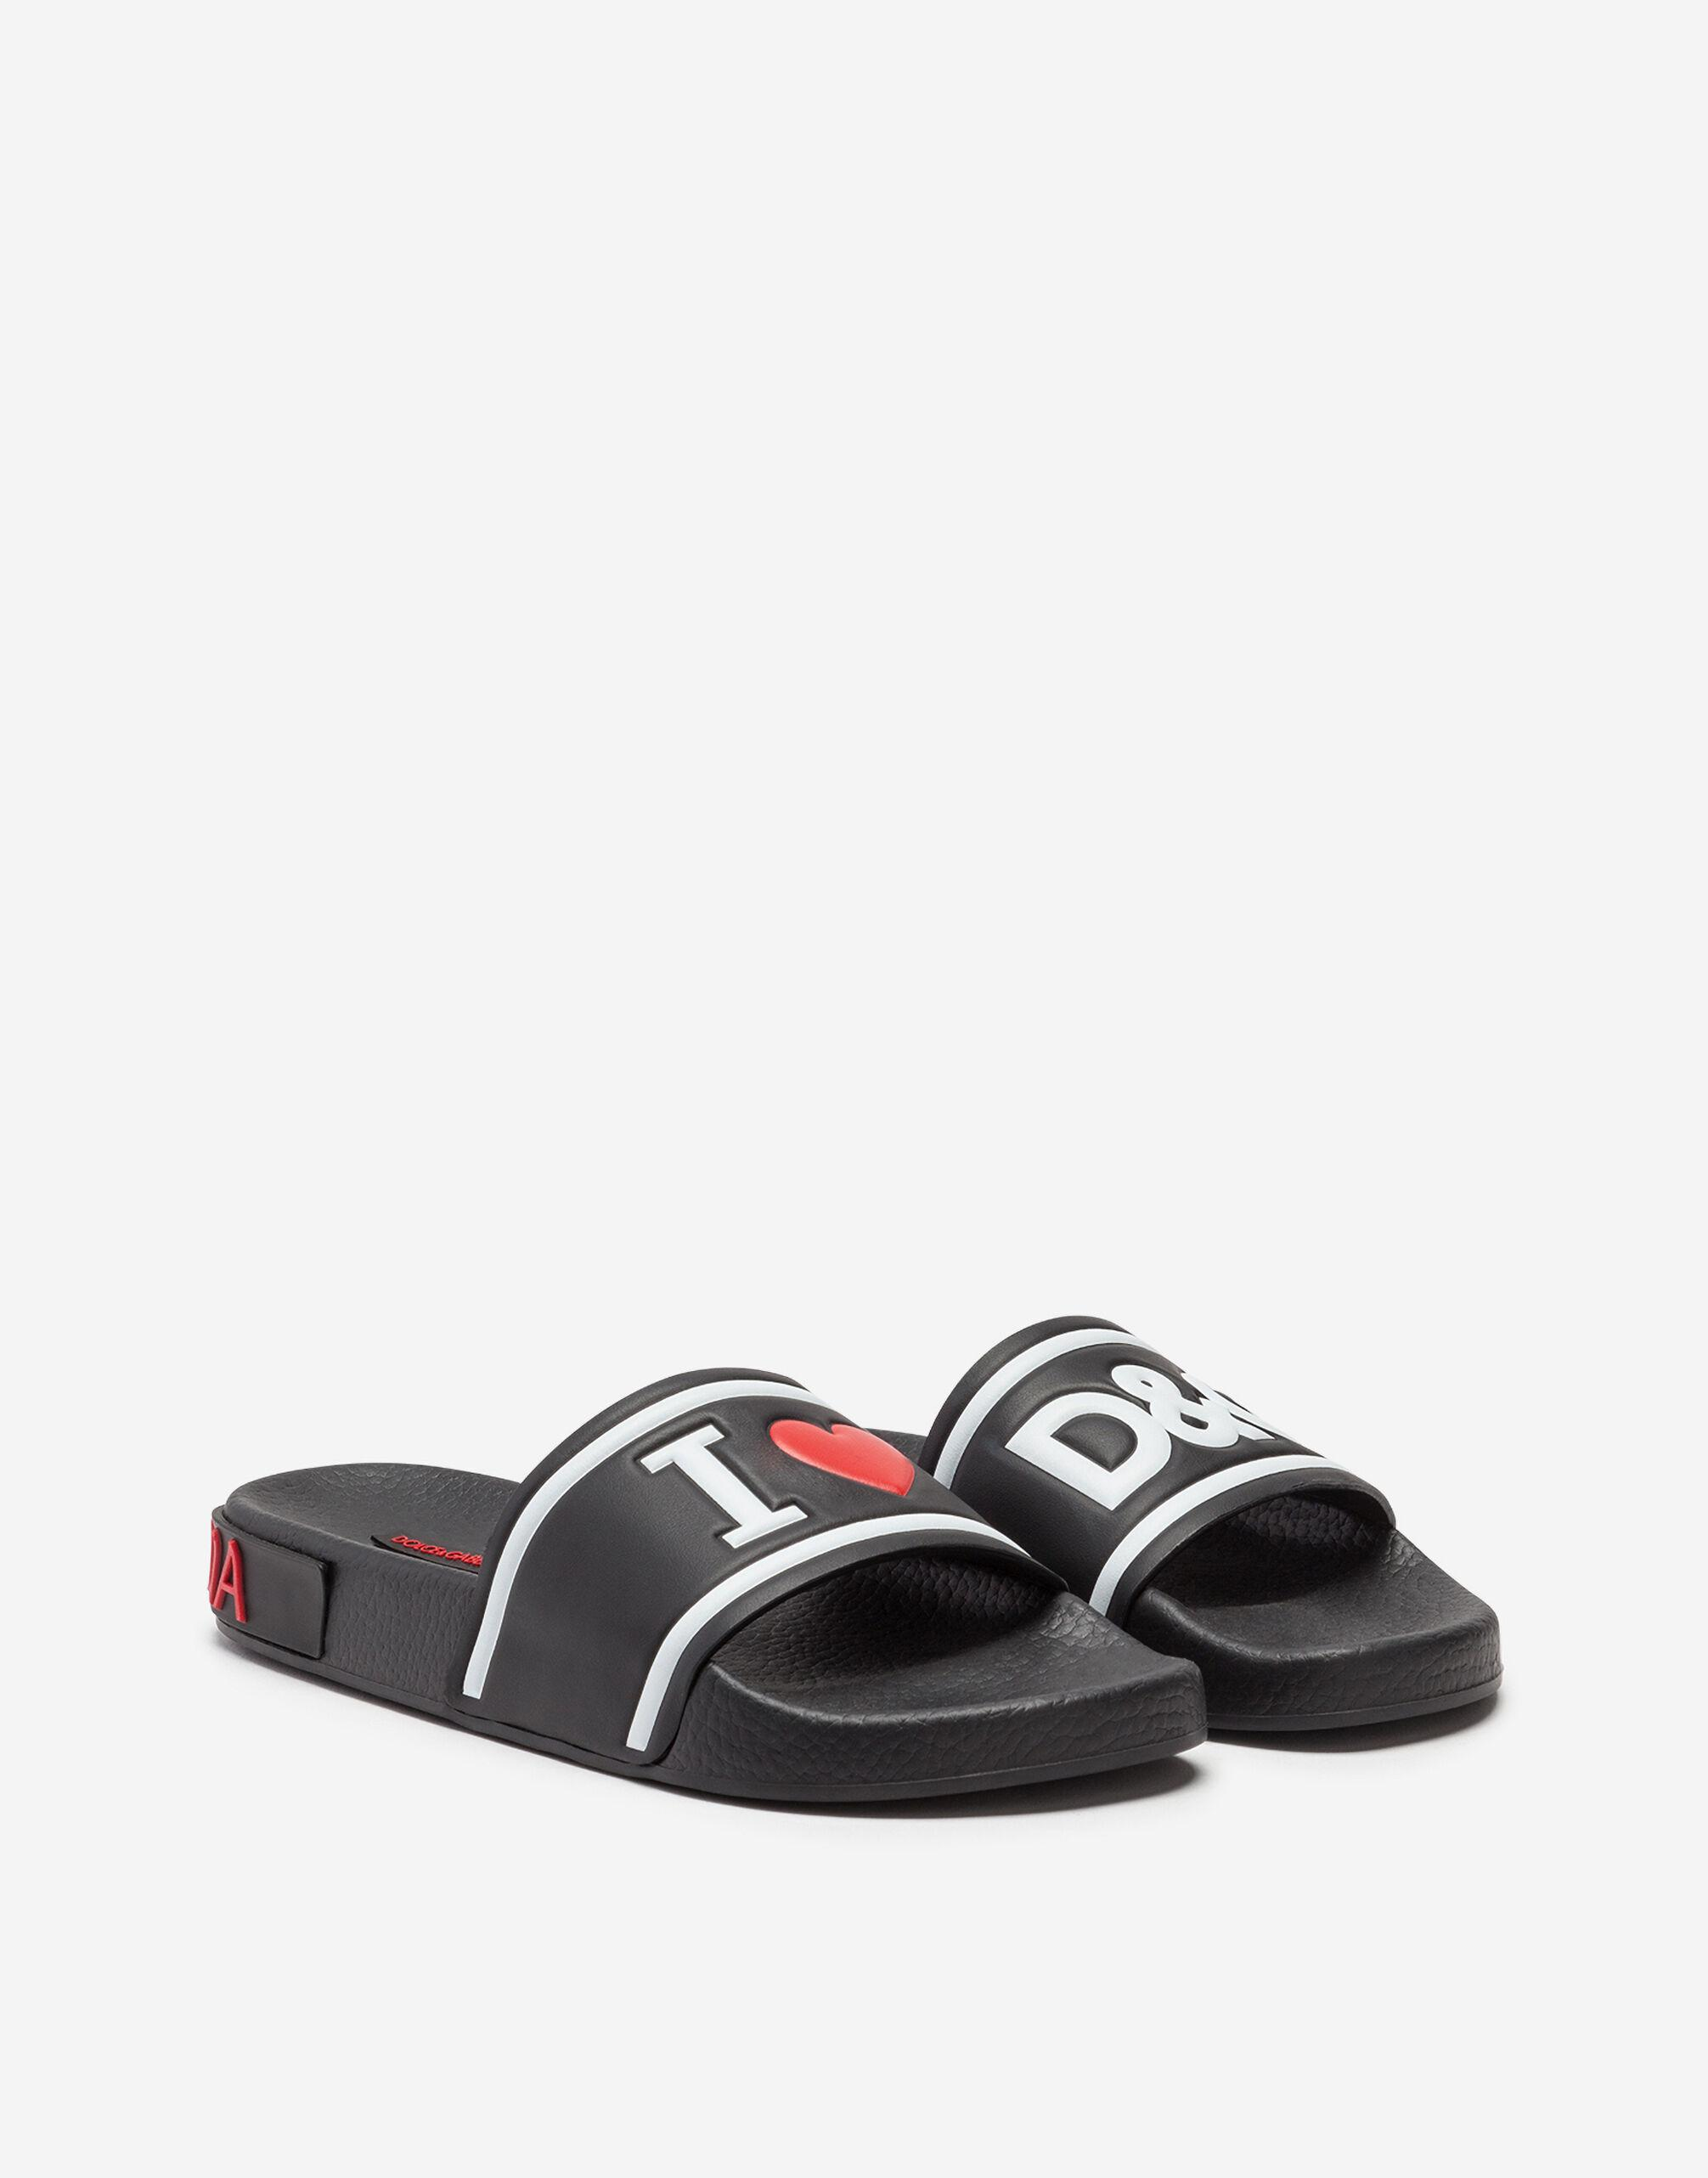 Rubber and calfskin sliders with high-frequency detailing 1